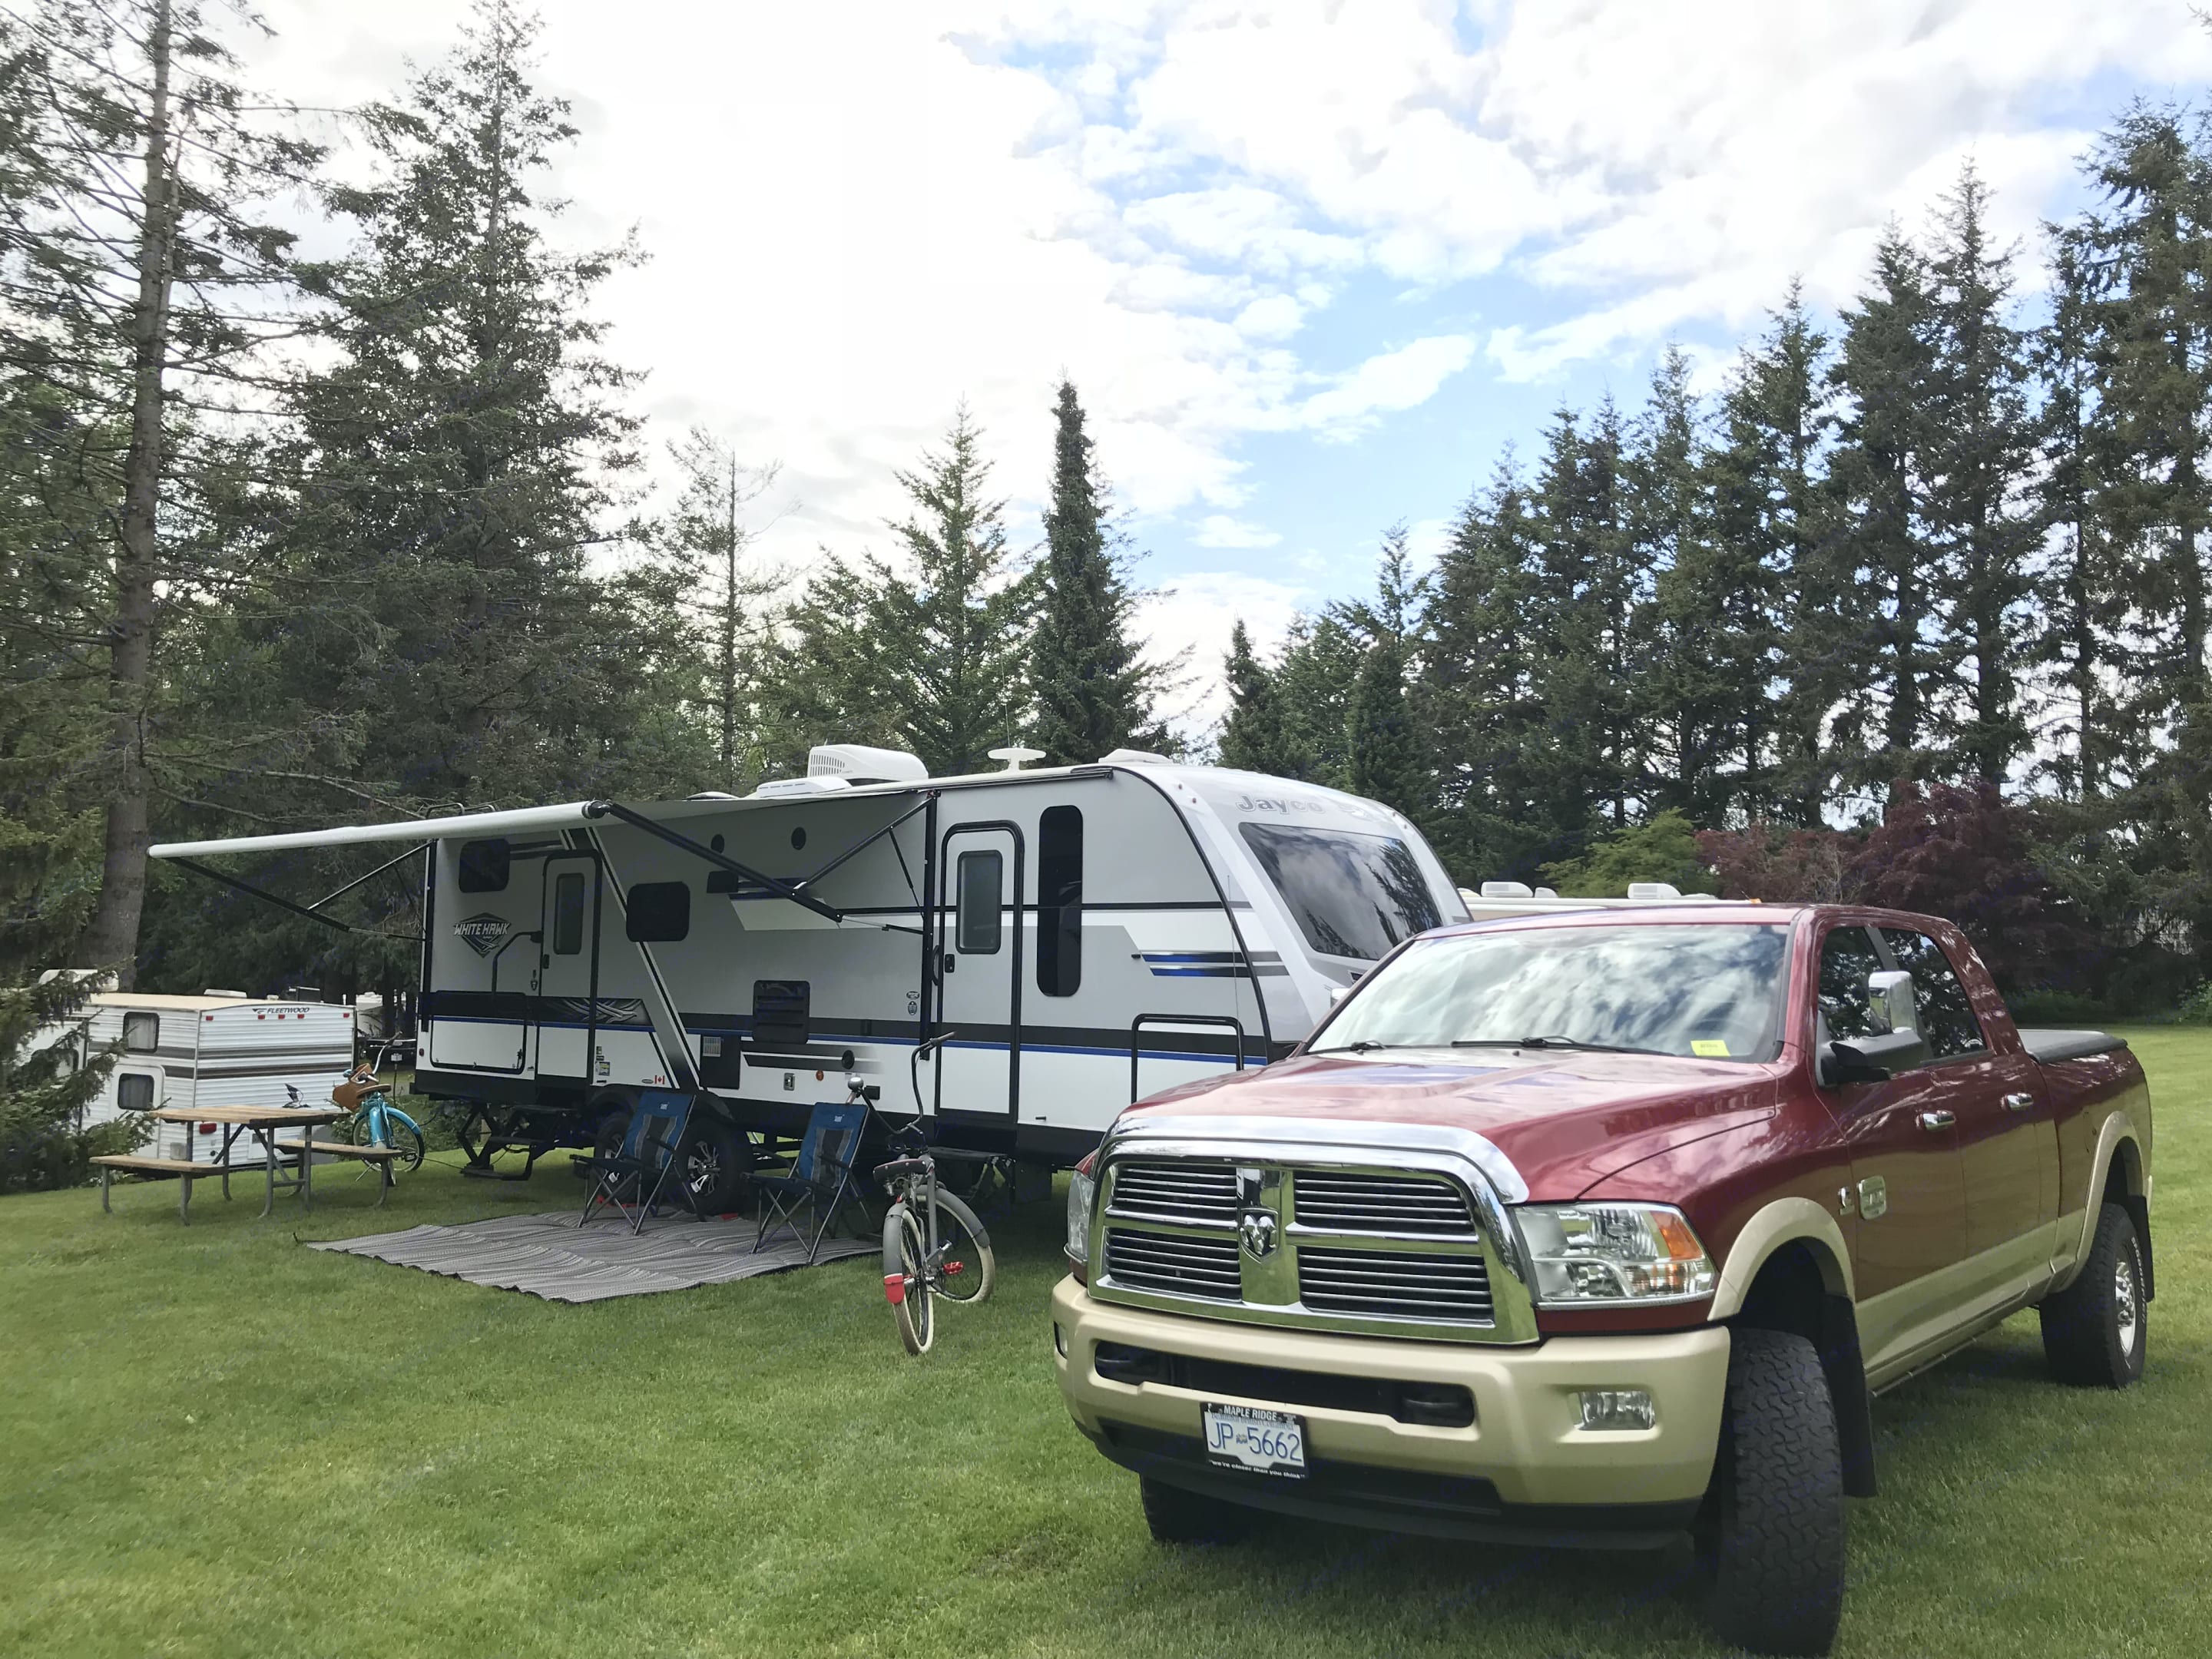 2018 29ft (34'4 total length) Jayco White Hawk with super slide. Sleeps 6 comfortably. Includes queen size residential mattress in Master bedroom, 2 double corner bunk beds and a convertible dinette.  Features an outdoor kitchen and shower.  All stainless appliance and solid surface counter tops.  Includes power awning with LED lighting, Bluetooth indoor and outdoor speakers and much much more.  This trailer doesn't disappoint! . Jayco White Hawk 2018